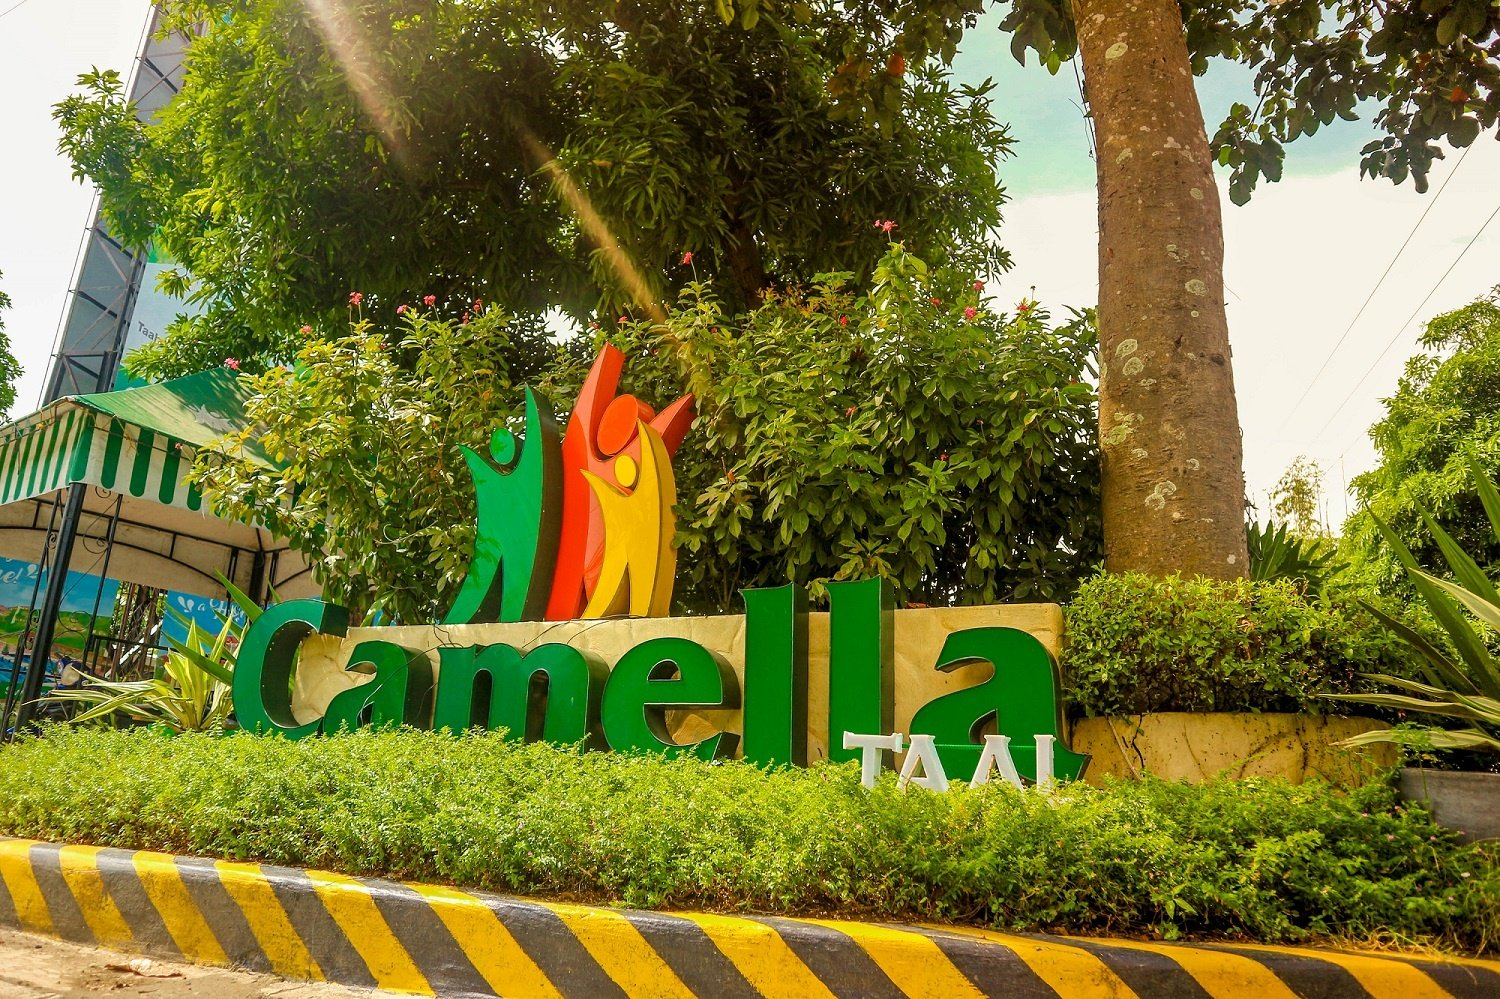 Camella Taal marker